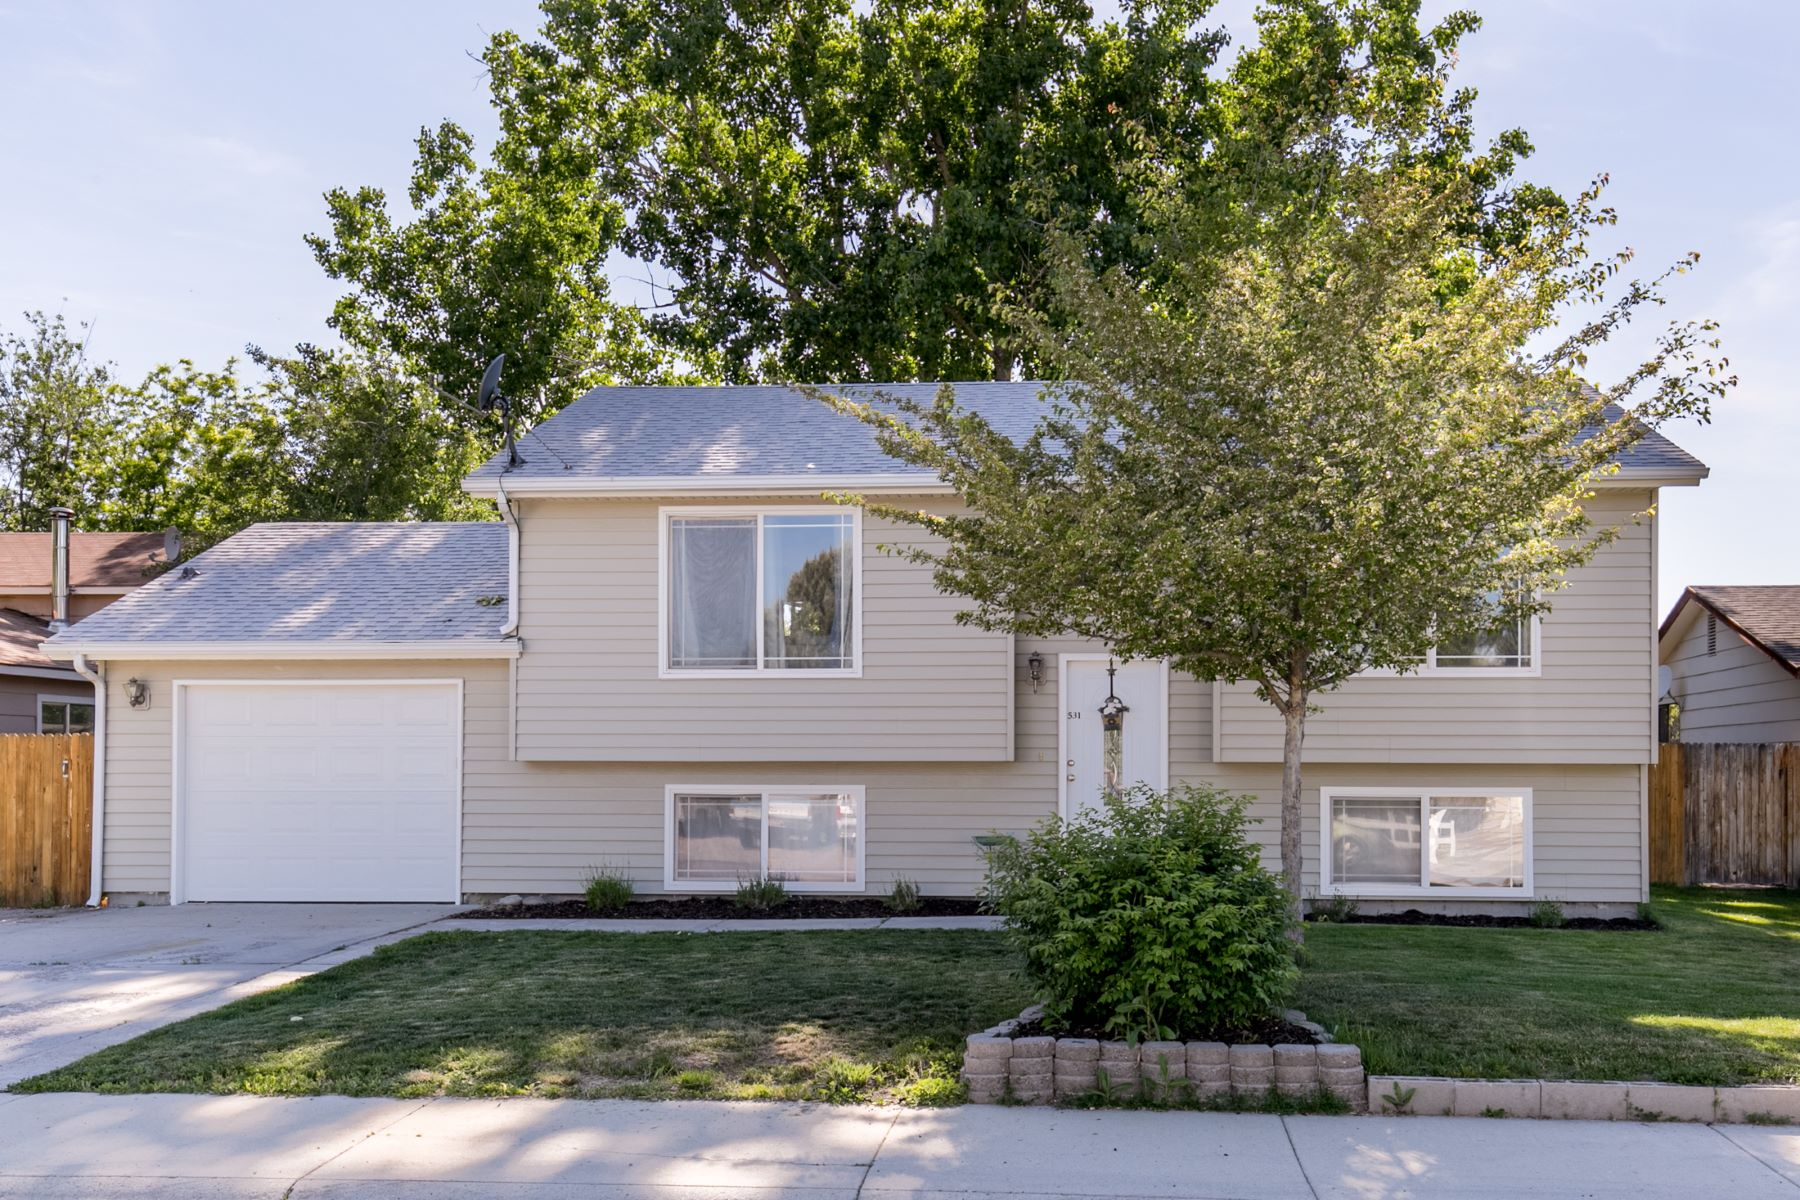 Single Family Home for Sale at 531 Lynhurst, Meridian Meridian, Idaho, 83642 United States